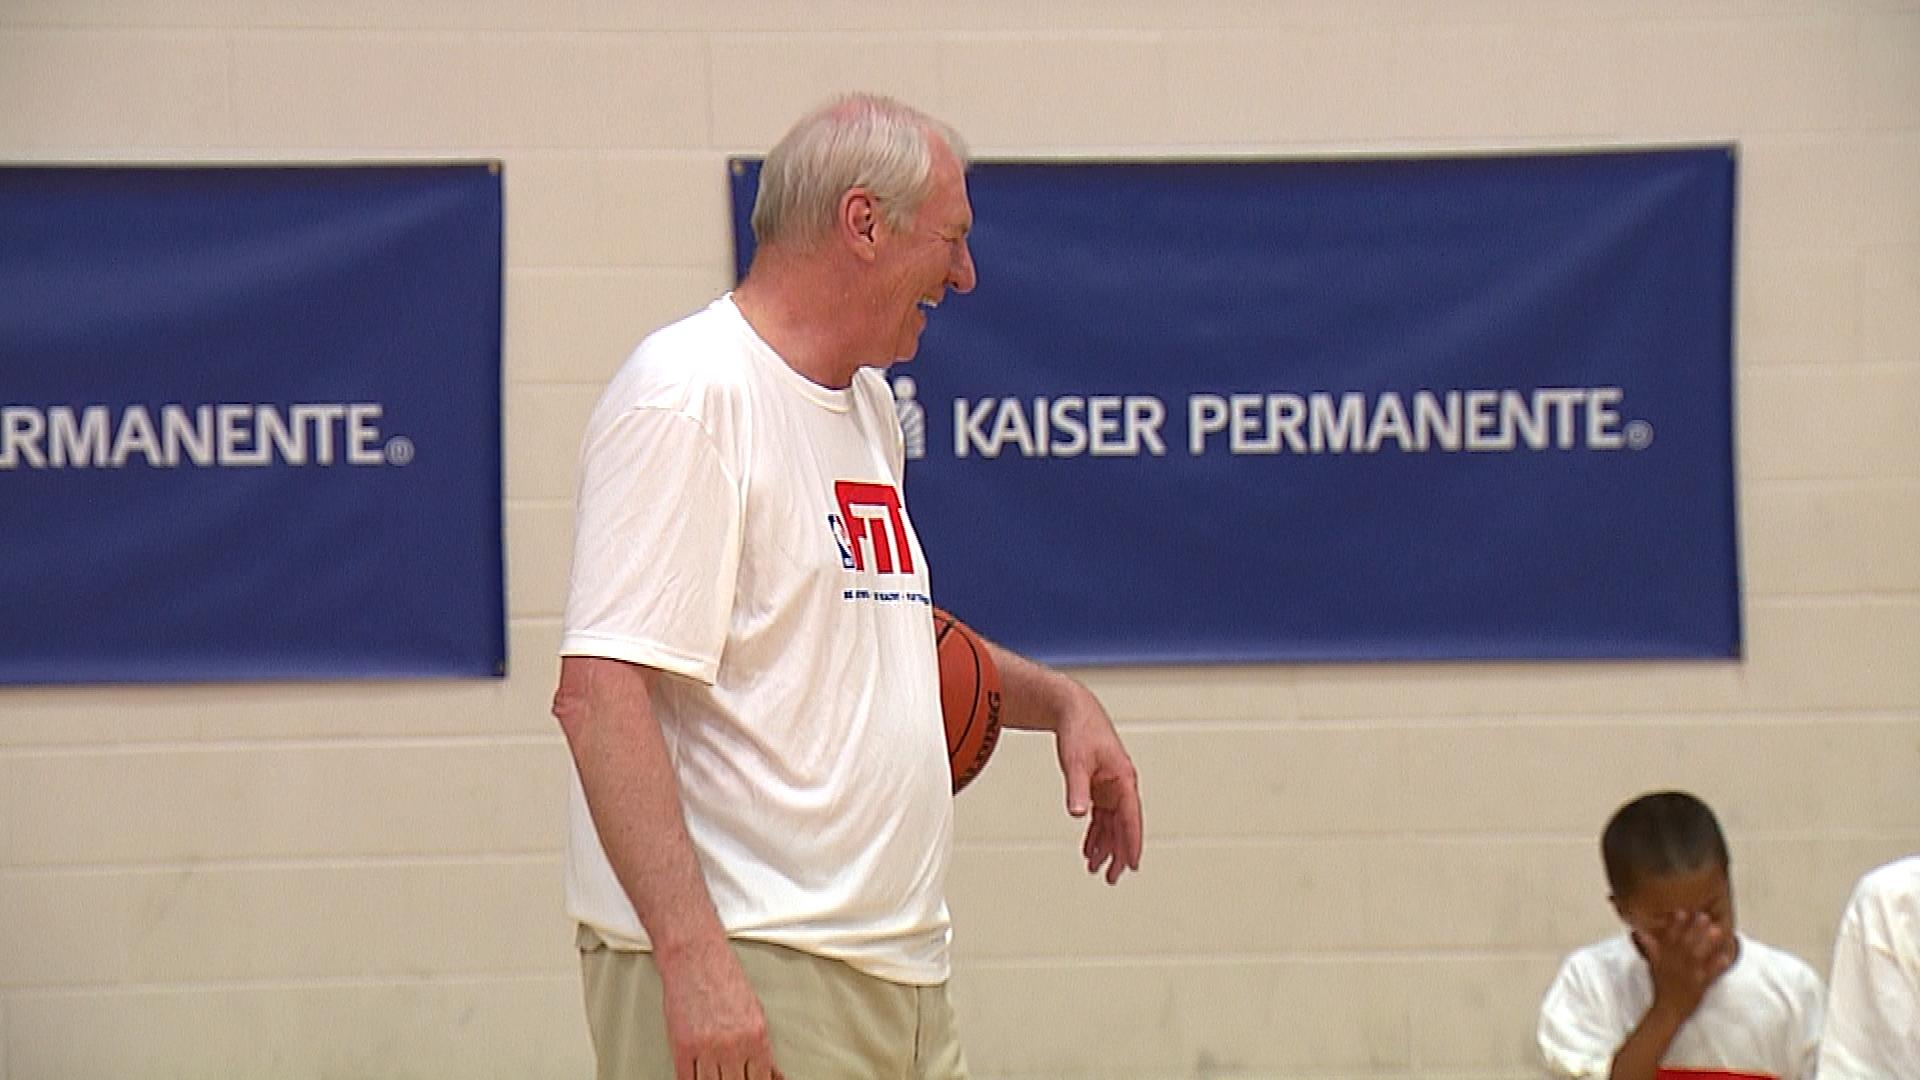 Dan Issel at the event (credit: CBS)